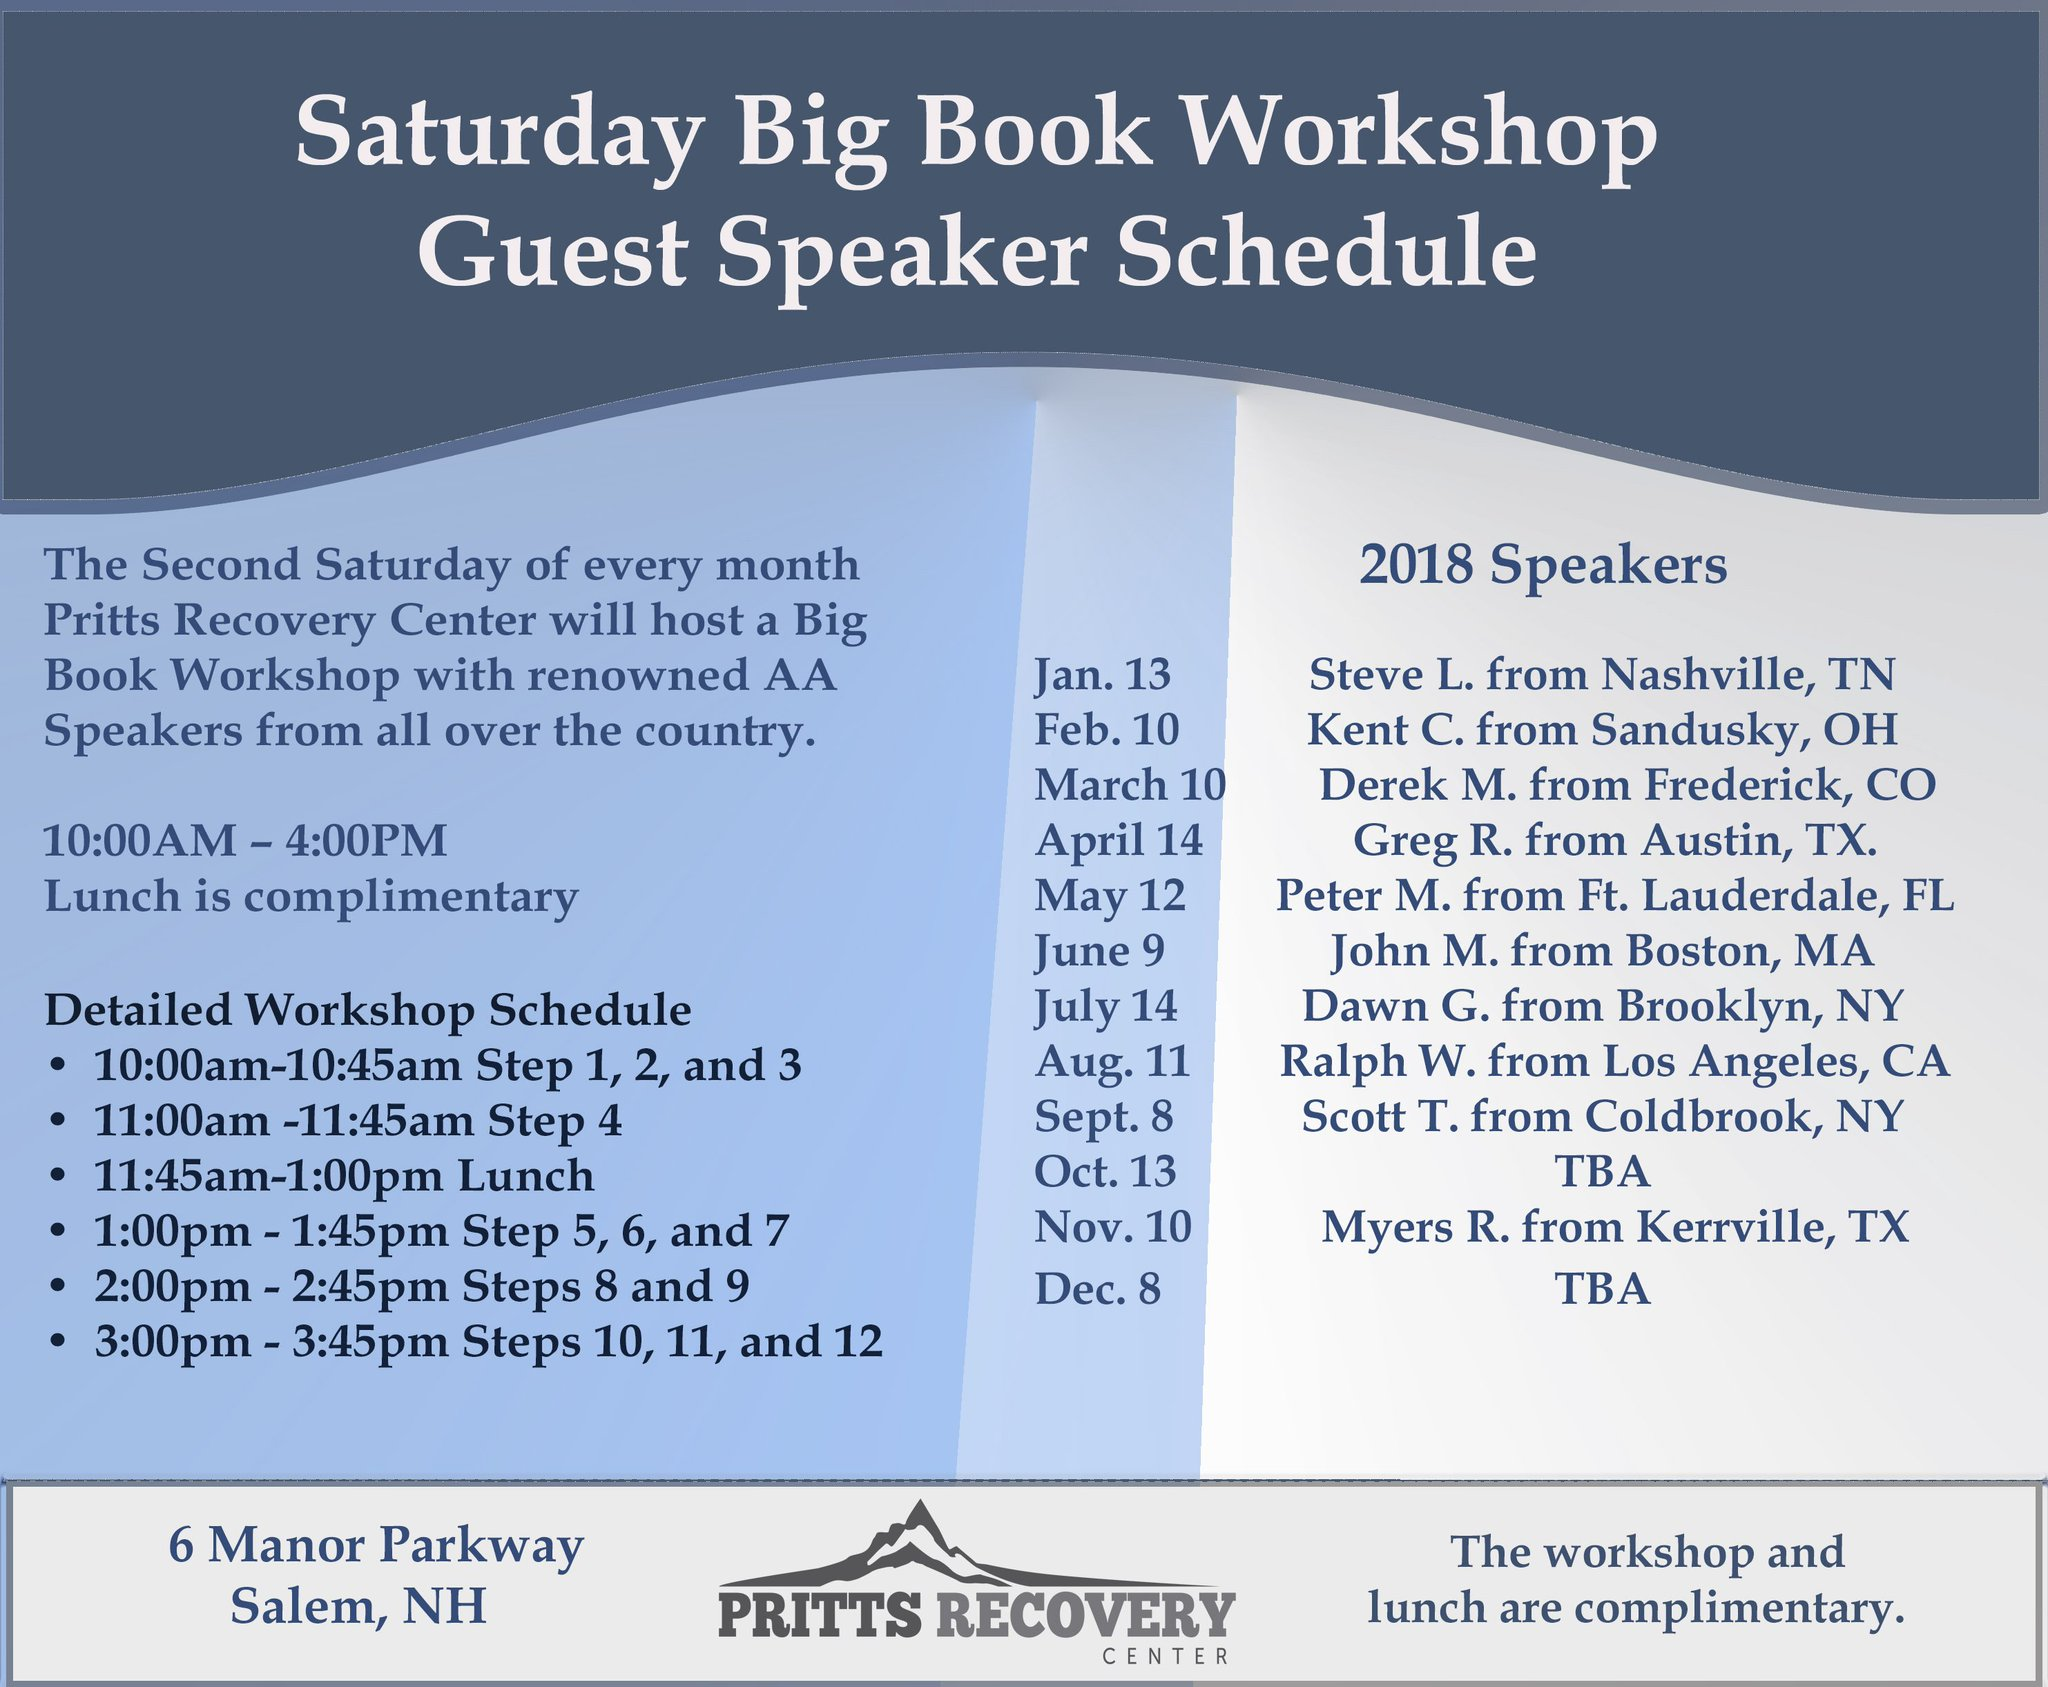 Granite Recovery On Twitter The 2018 Schedule Is Filled With Great Speakers For Saay Book Works At Pritts Center